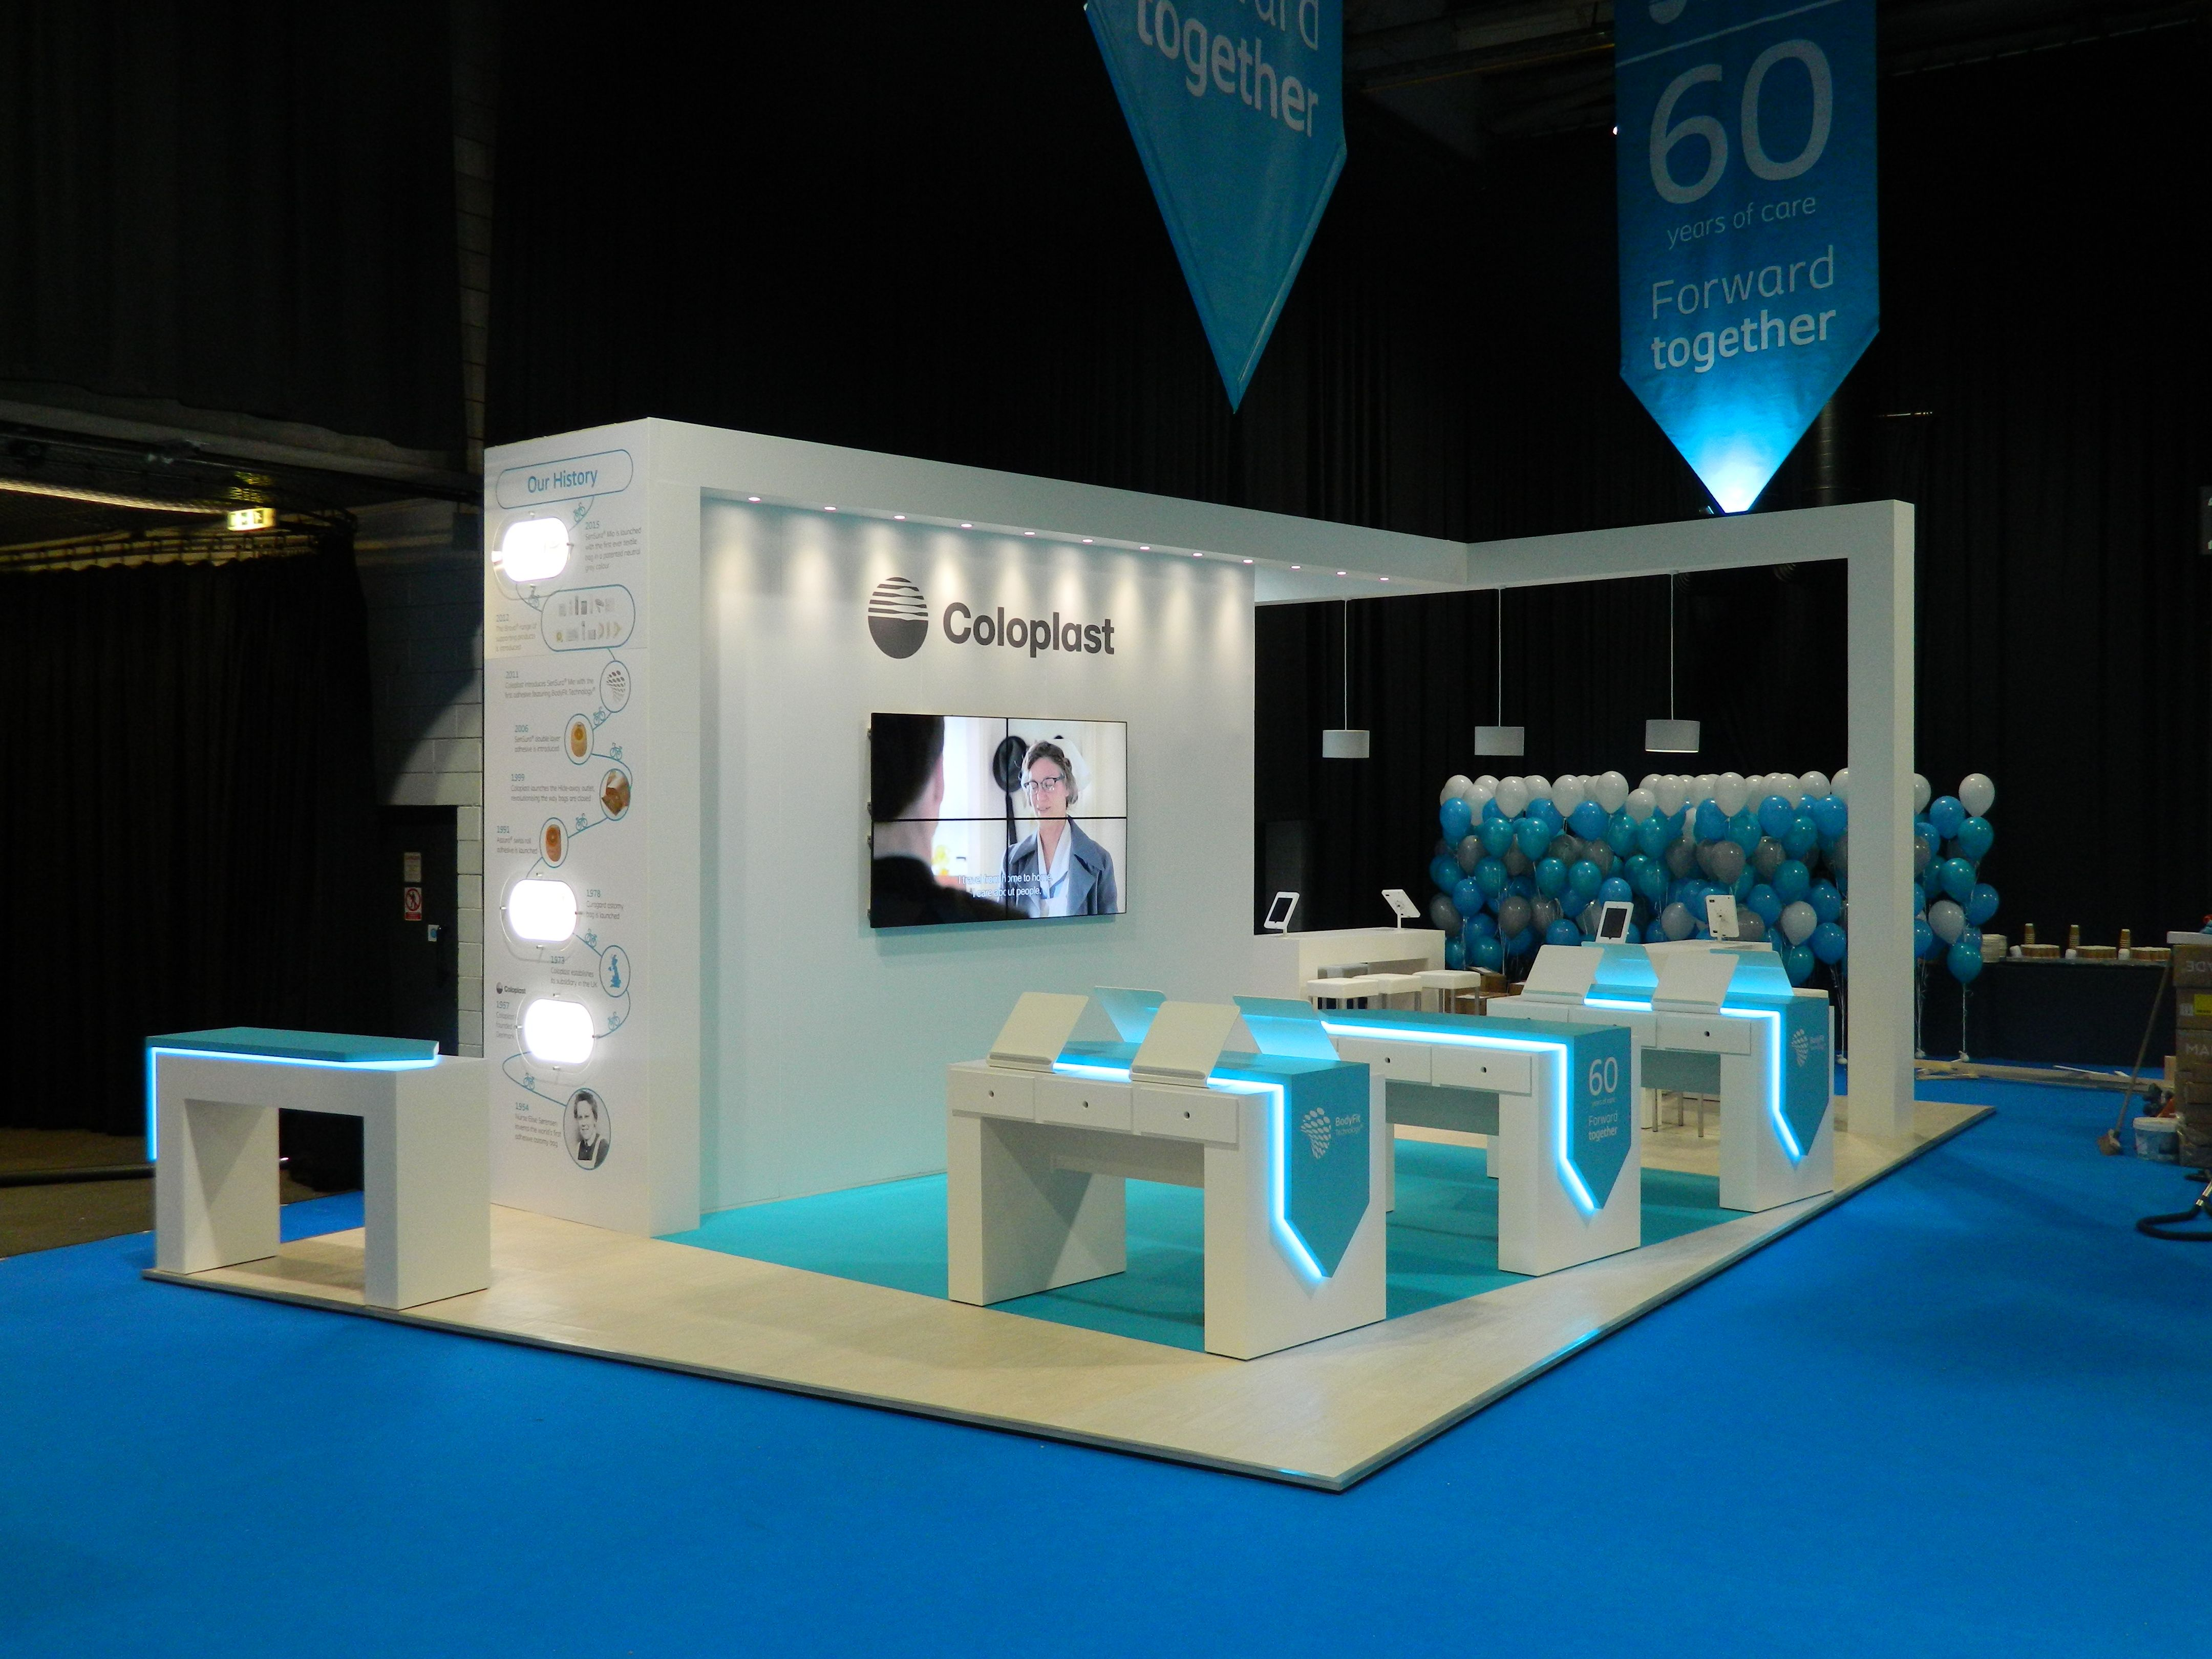 Exhibition Displays Glasgow : Coloplast exhibition stand at ascn in glasgow exhibit stand